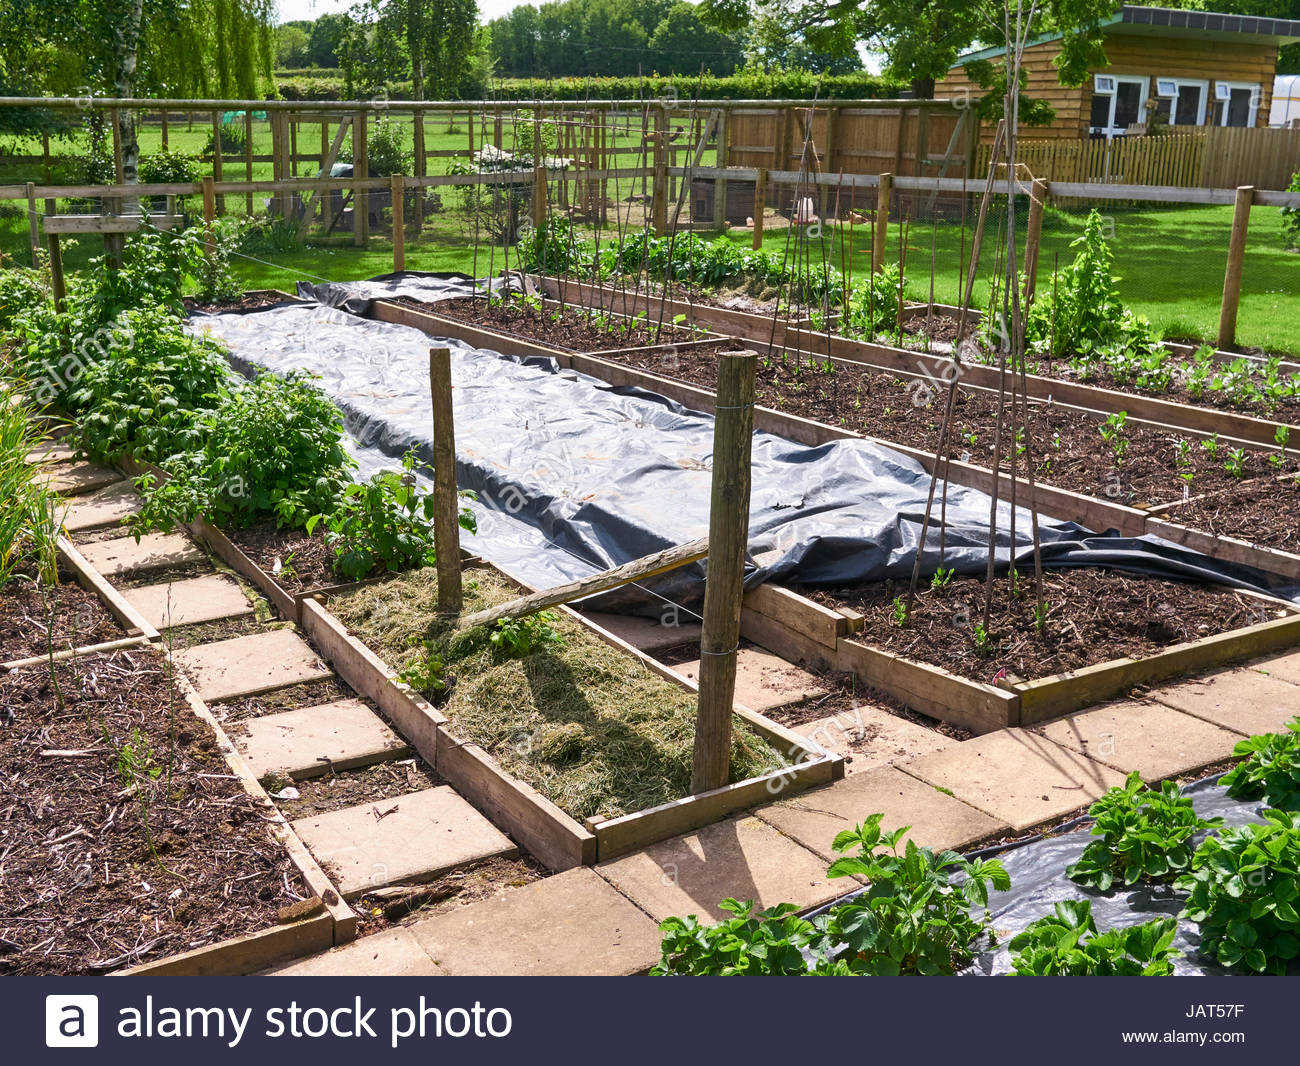 Black plastic weed supressor on raised beds and vegetable plot in a garden allotment uk - Stock Image